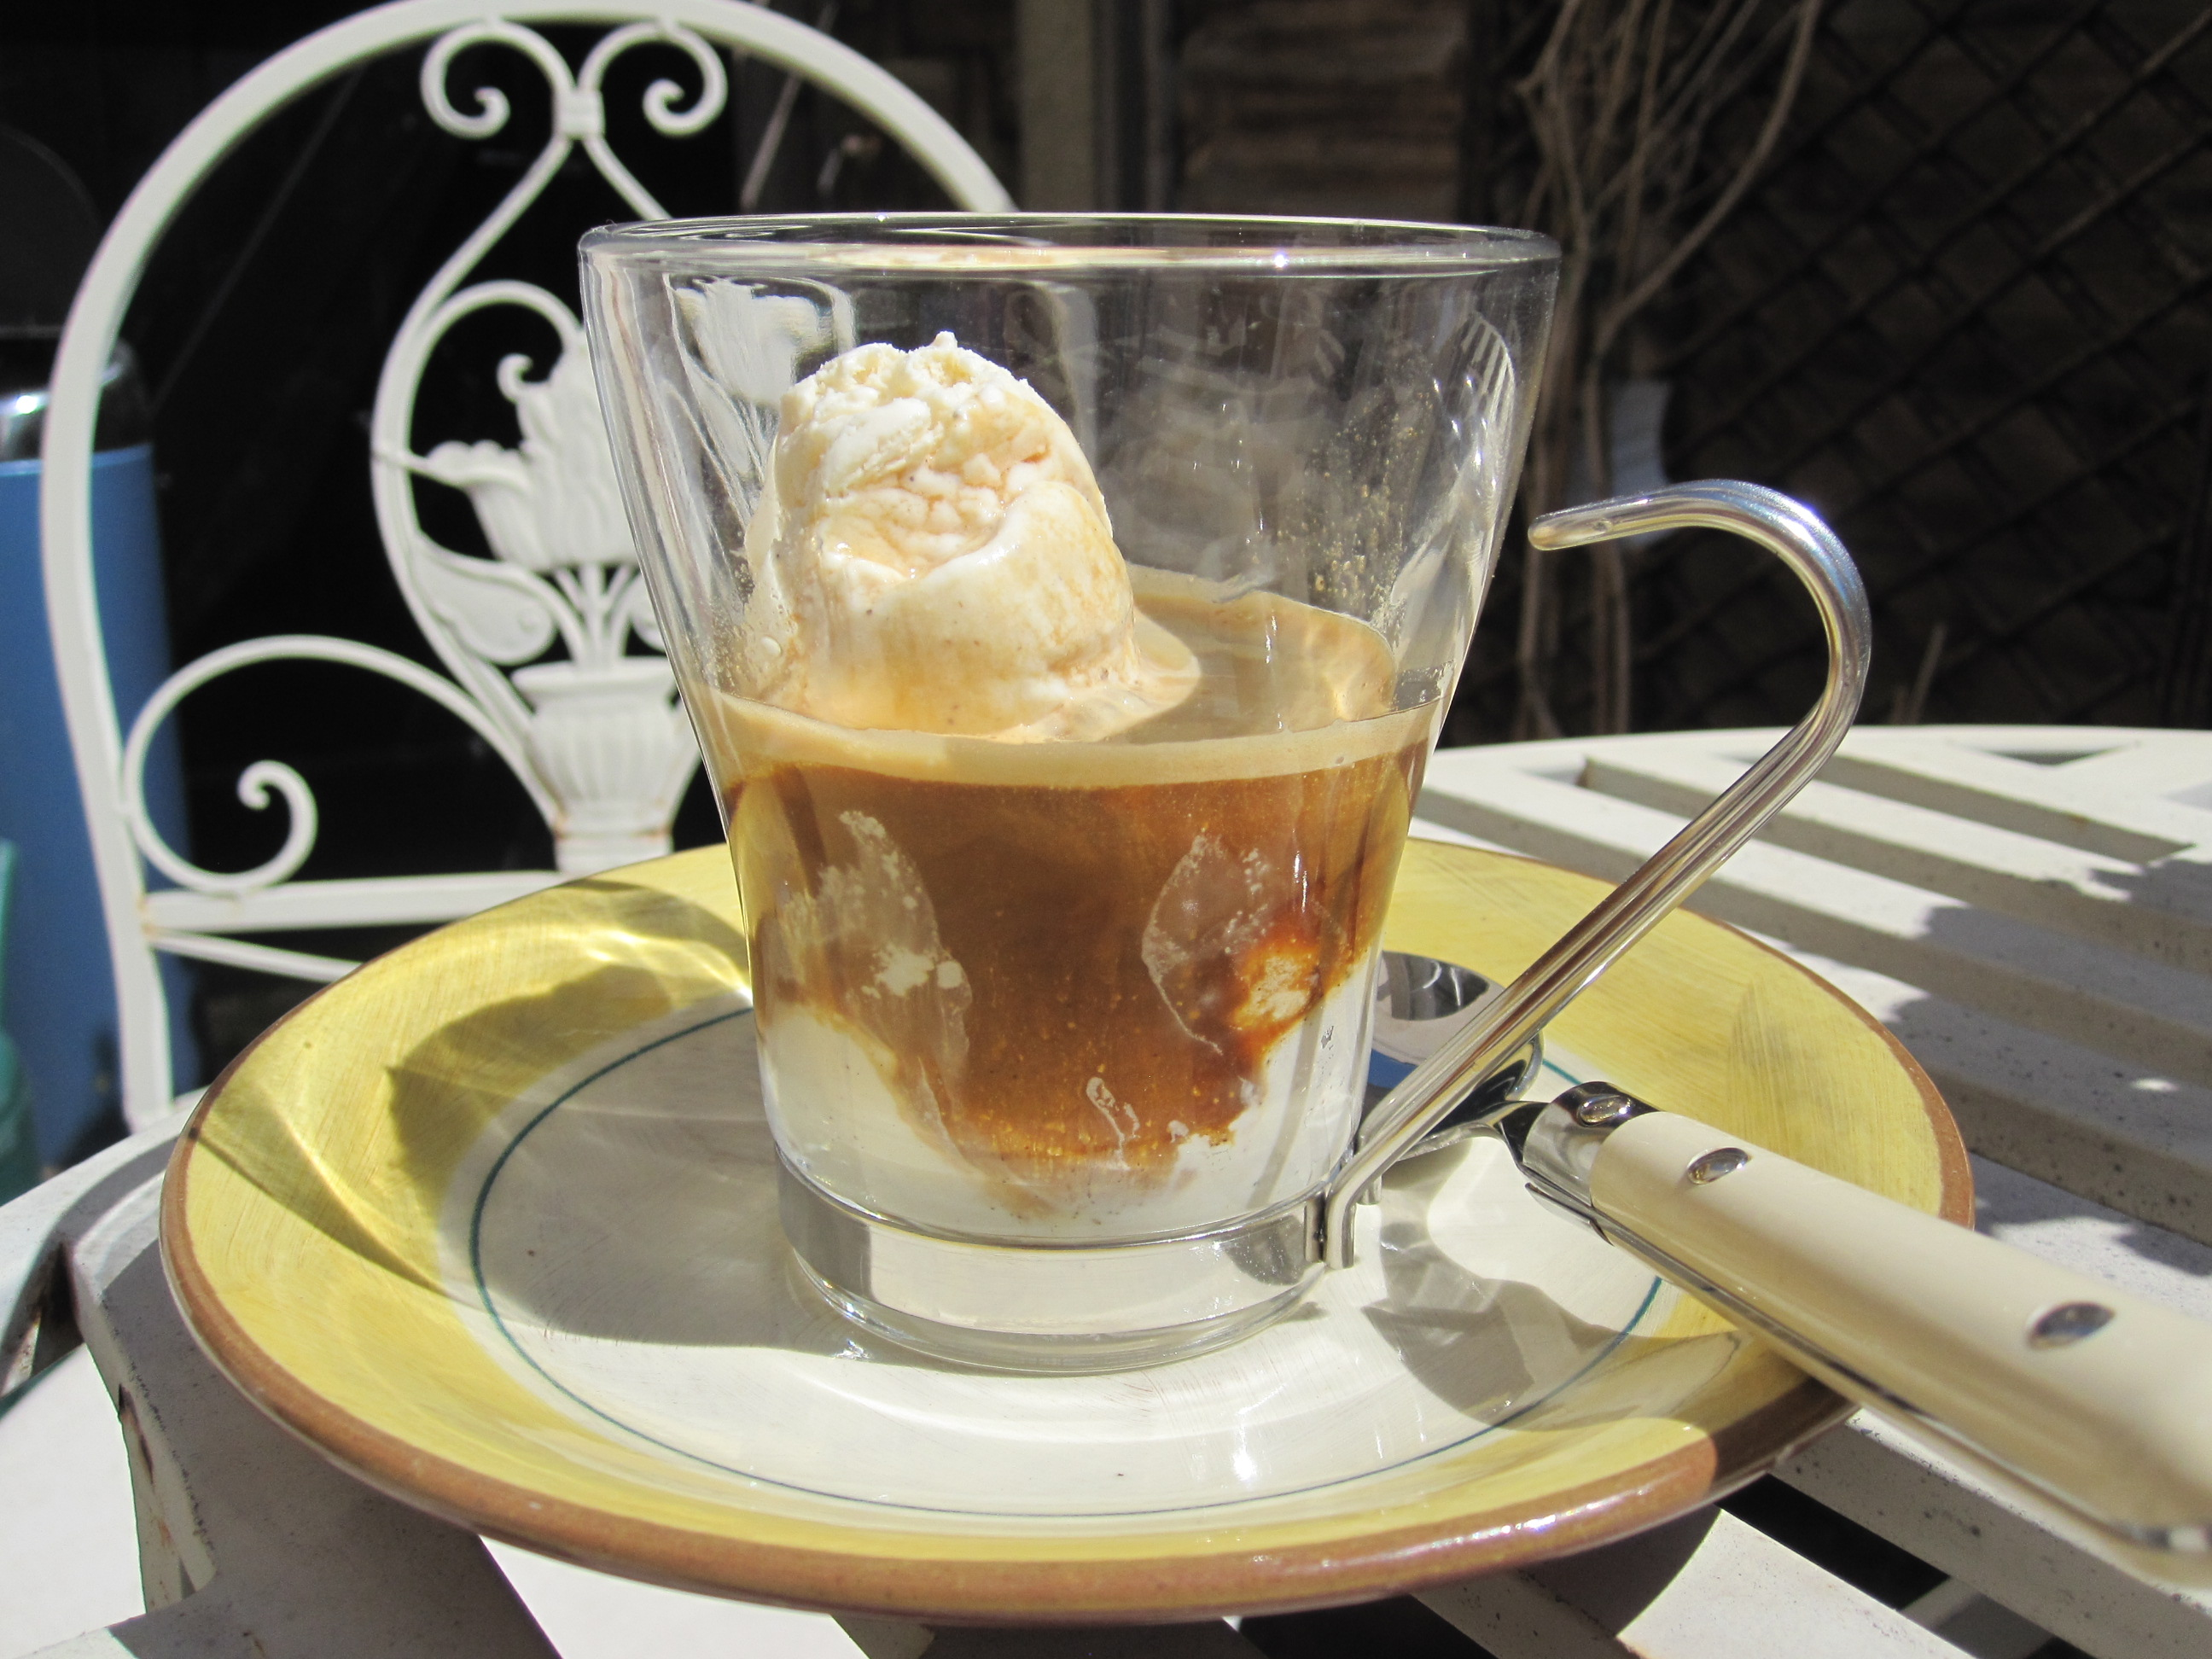 Affogato heavenly coffee ice cream travel gourmet gently pour the hot coffee over the cold ice cream as you eat the ice cream the coffee will melt it and the two gorgeous flavours combine to make a creamy ccuart Images